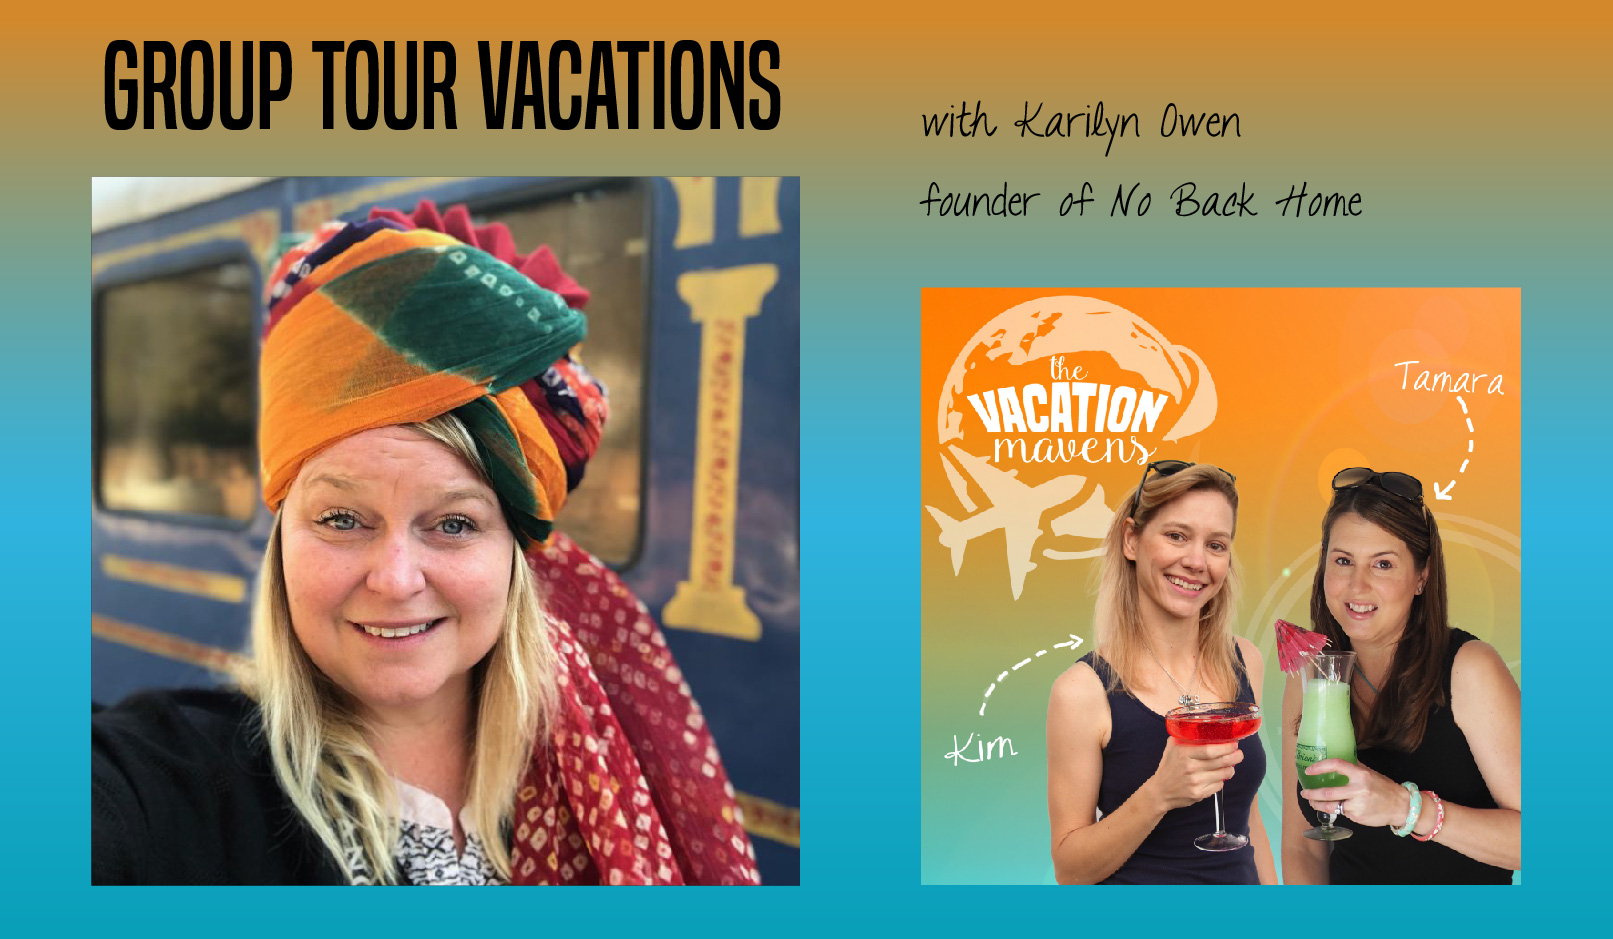 Group tour vacations with Karilyn Owen